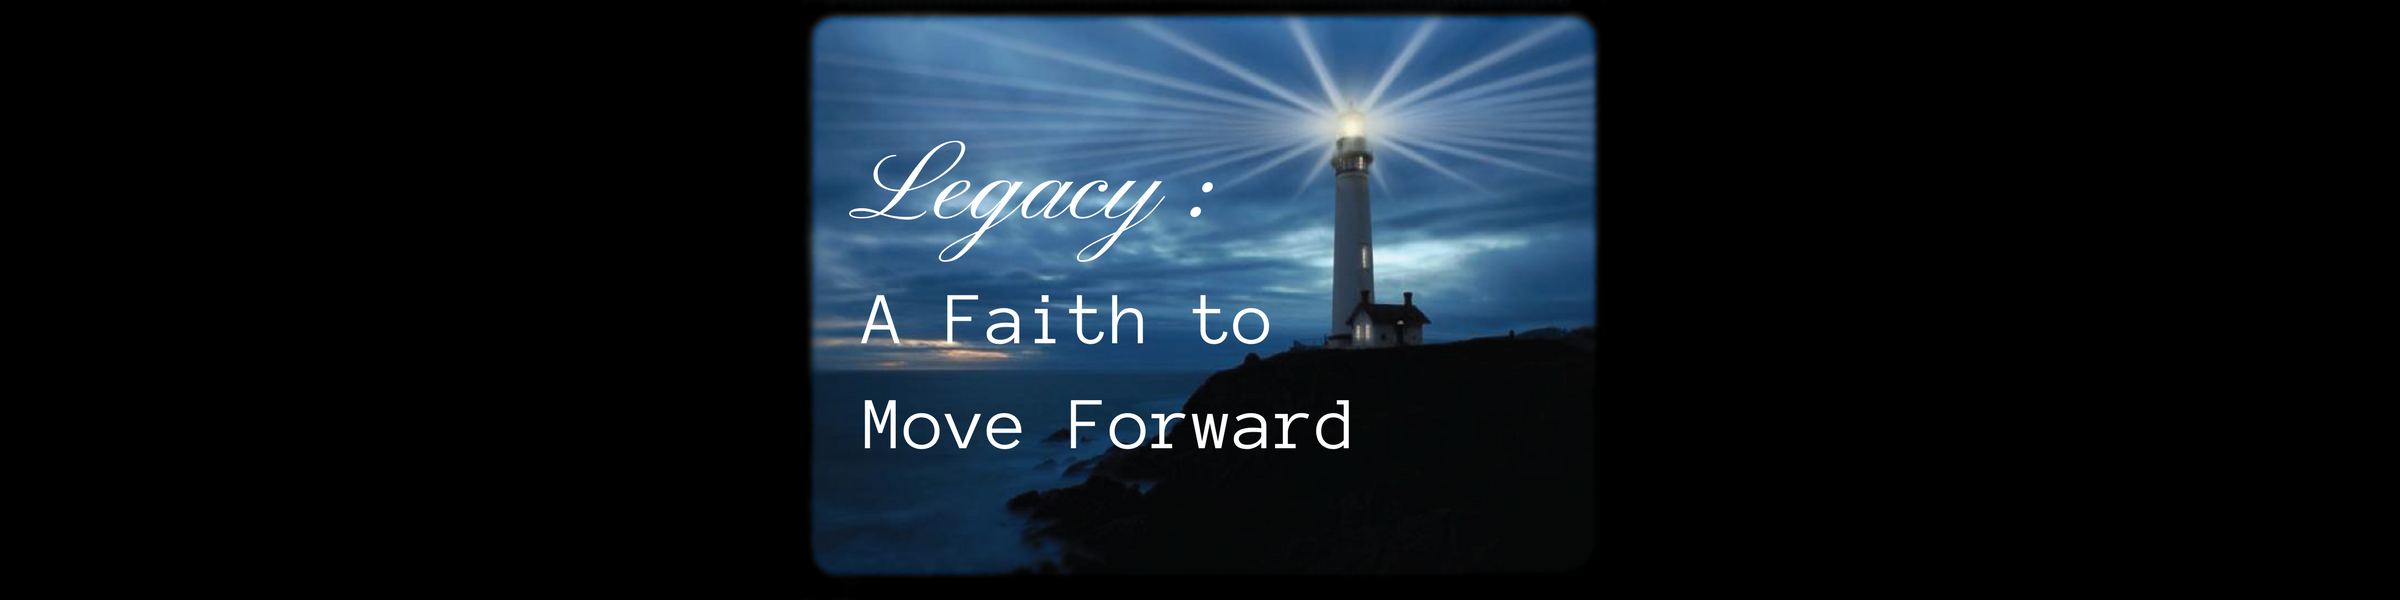 Legacy: A Faith to Move Forward